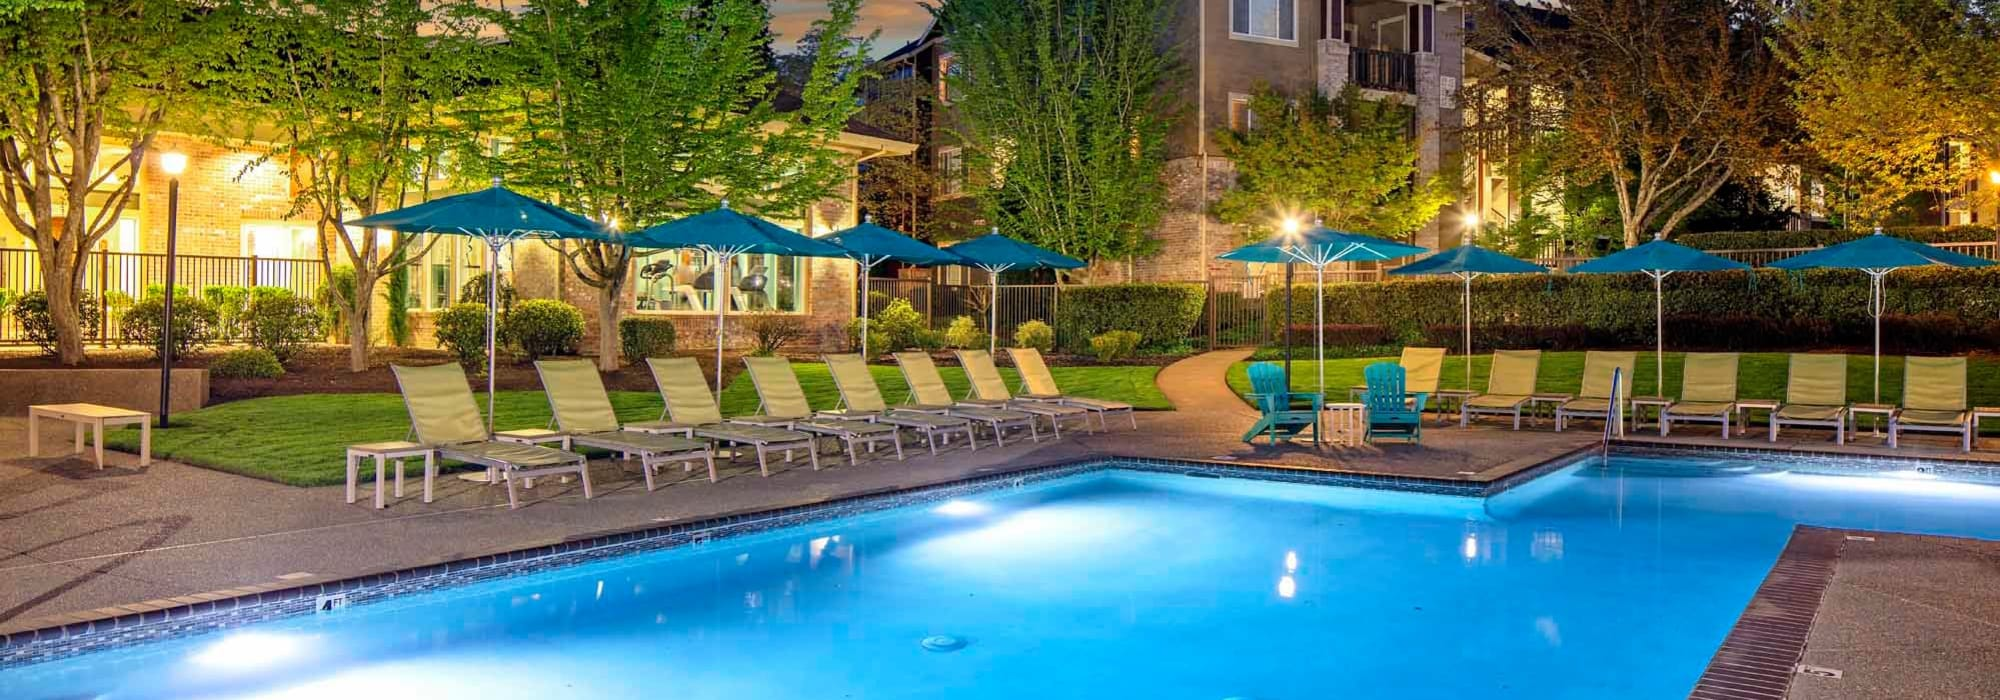 Amenities at The Grove at Orenco Station in Hillsboro, Oregon